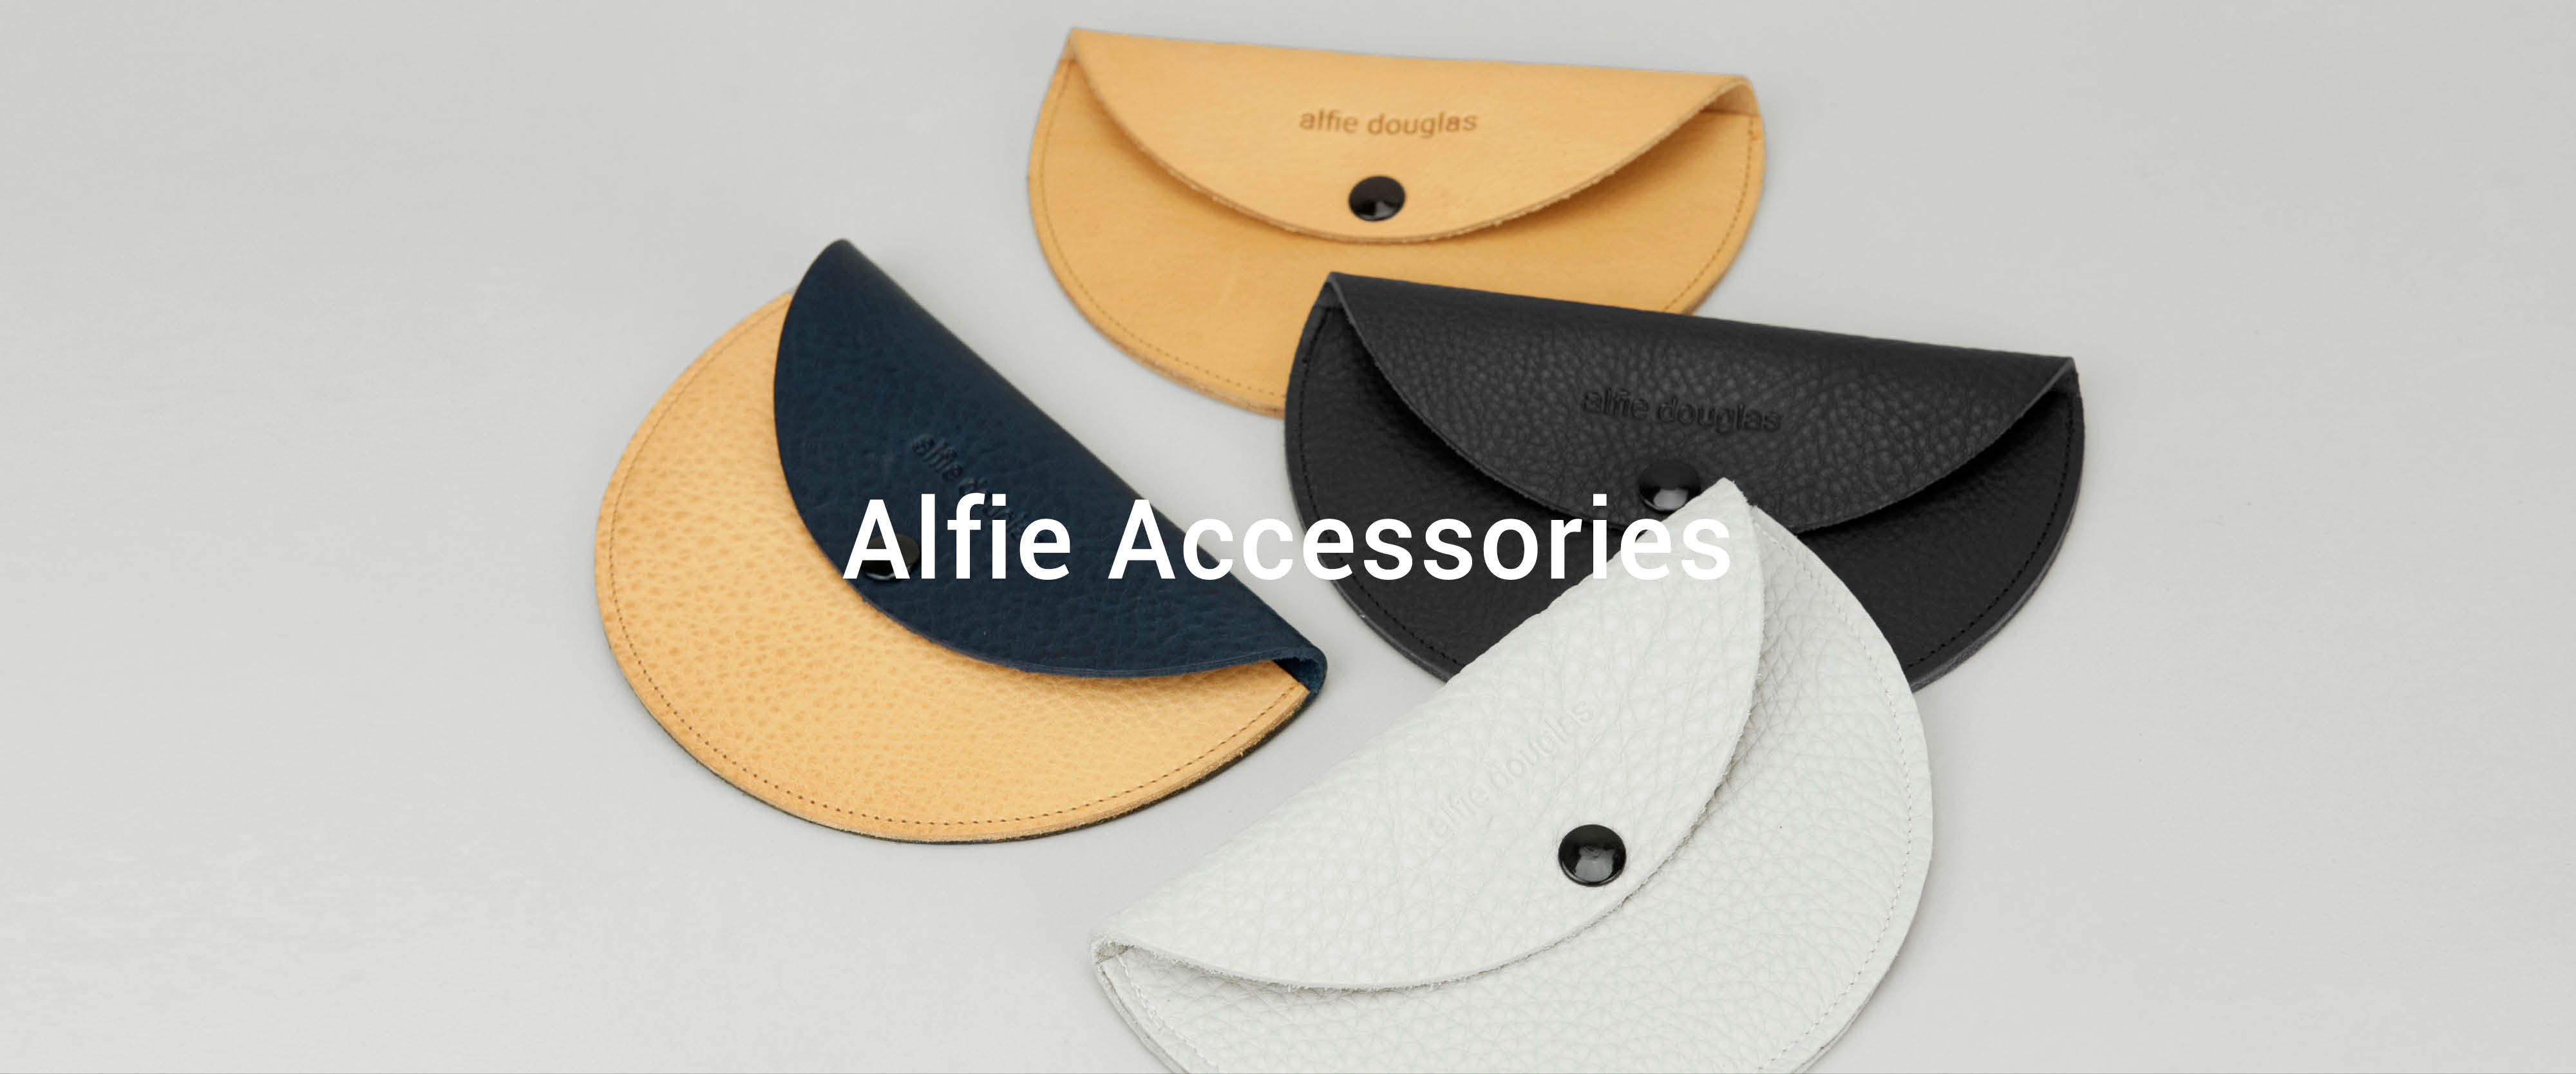 Alfie Douglas handmade leather accessories